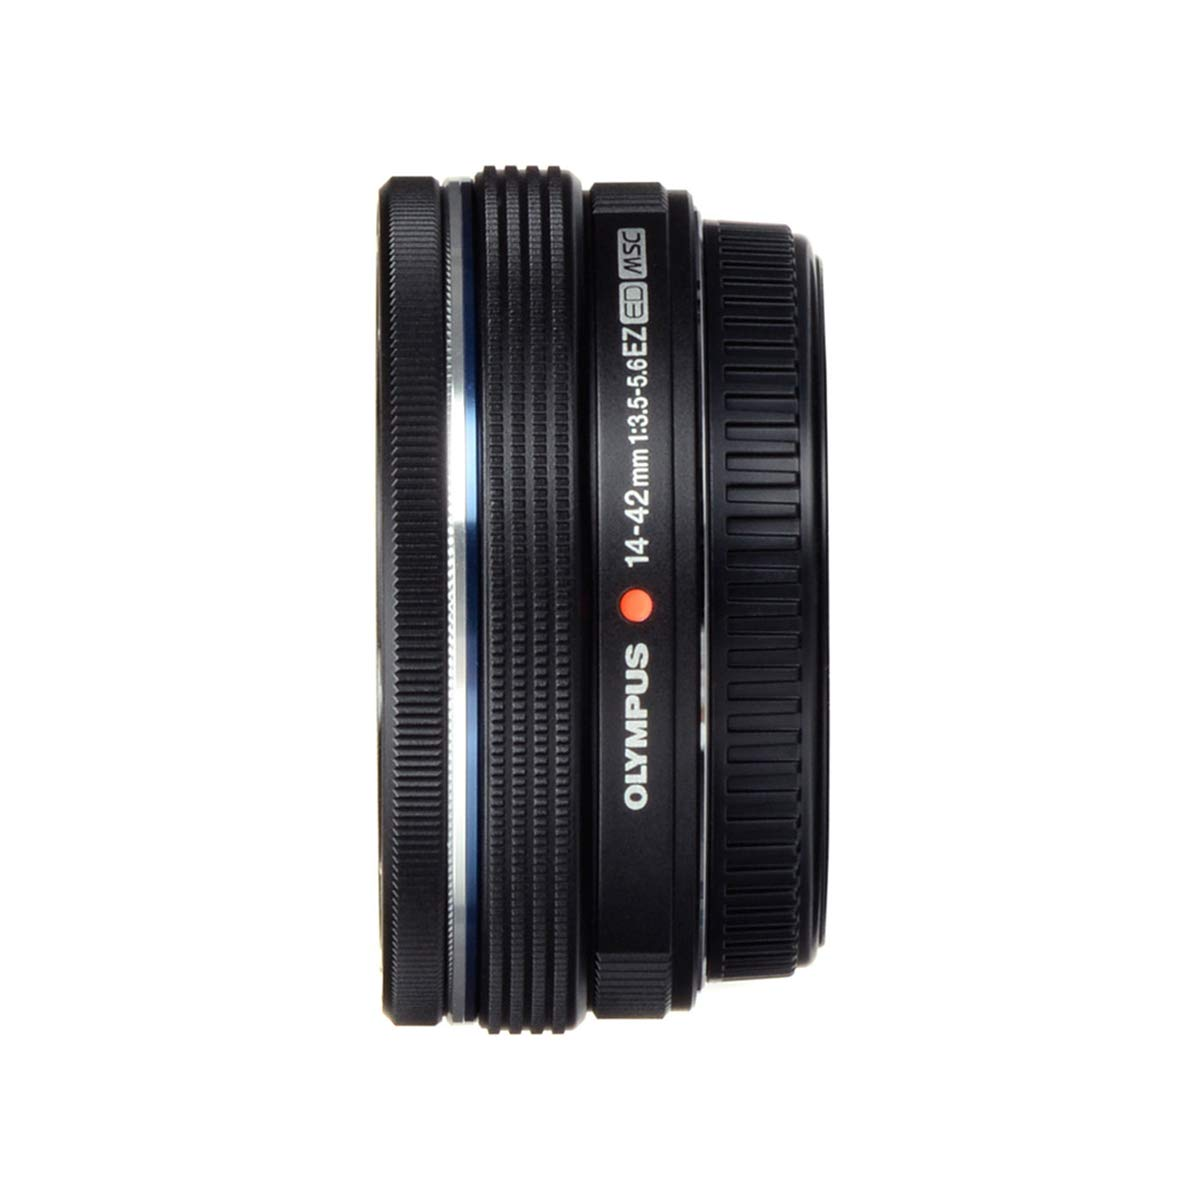 Minolta AF Lens Adapter for Olympus PEN E-PM2 OM-D E-M5 PEN E-P3 E-PL3 E-PM1 E-PL2 E-PL1s E-PL1 E-P2 Gadget Place Sony Alpha